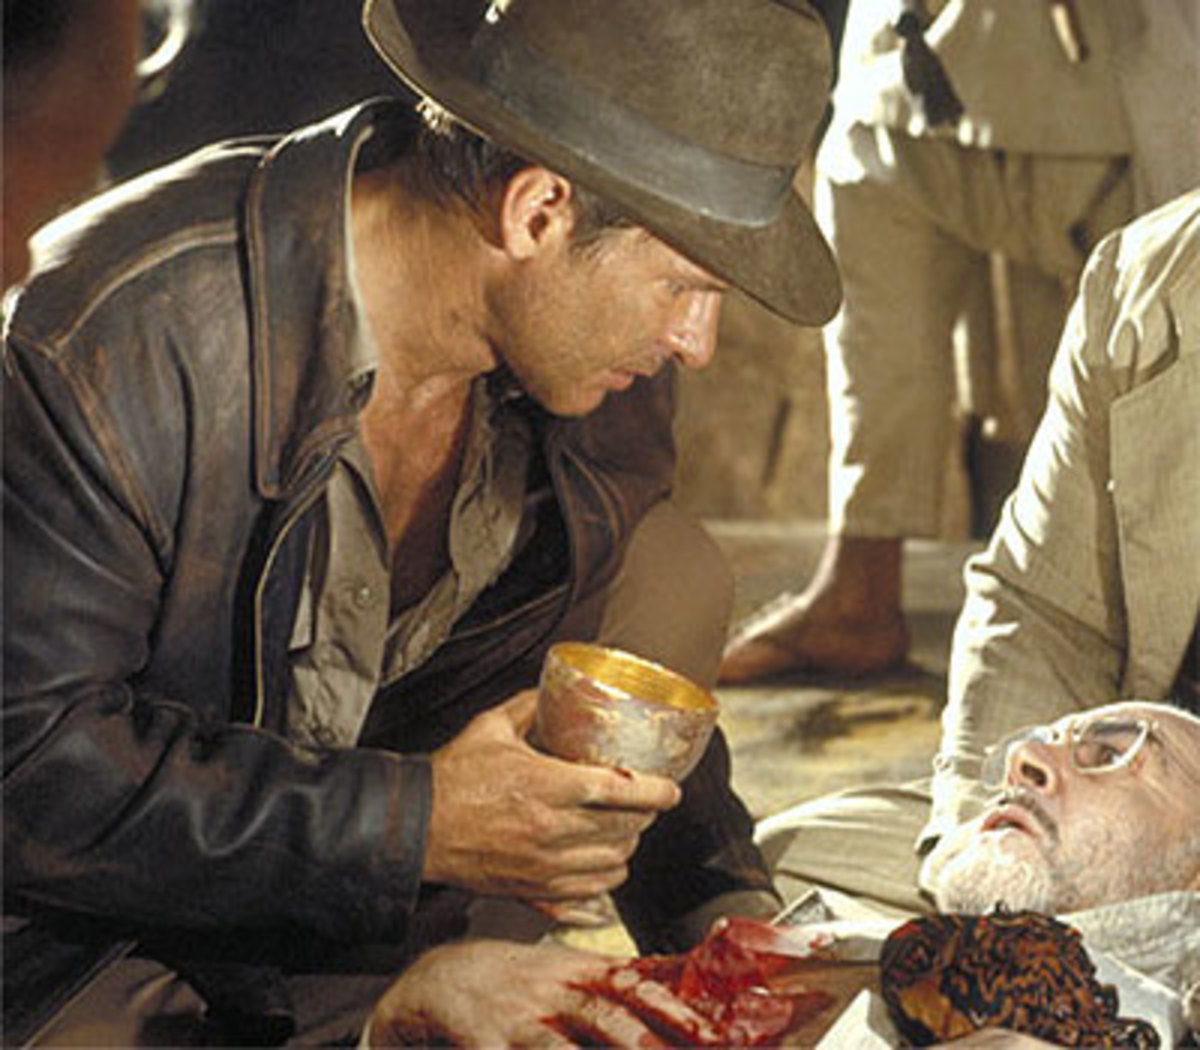 Indiana Jones and the Last Crusade (includes an appearance by Joseph of Arimathea!)